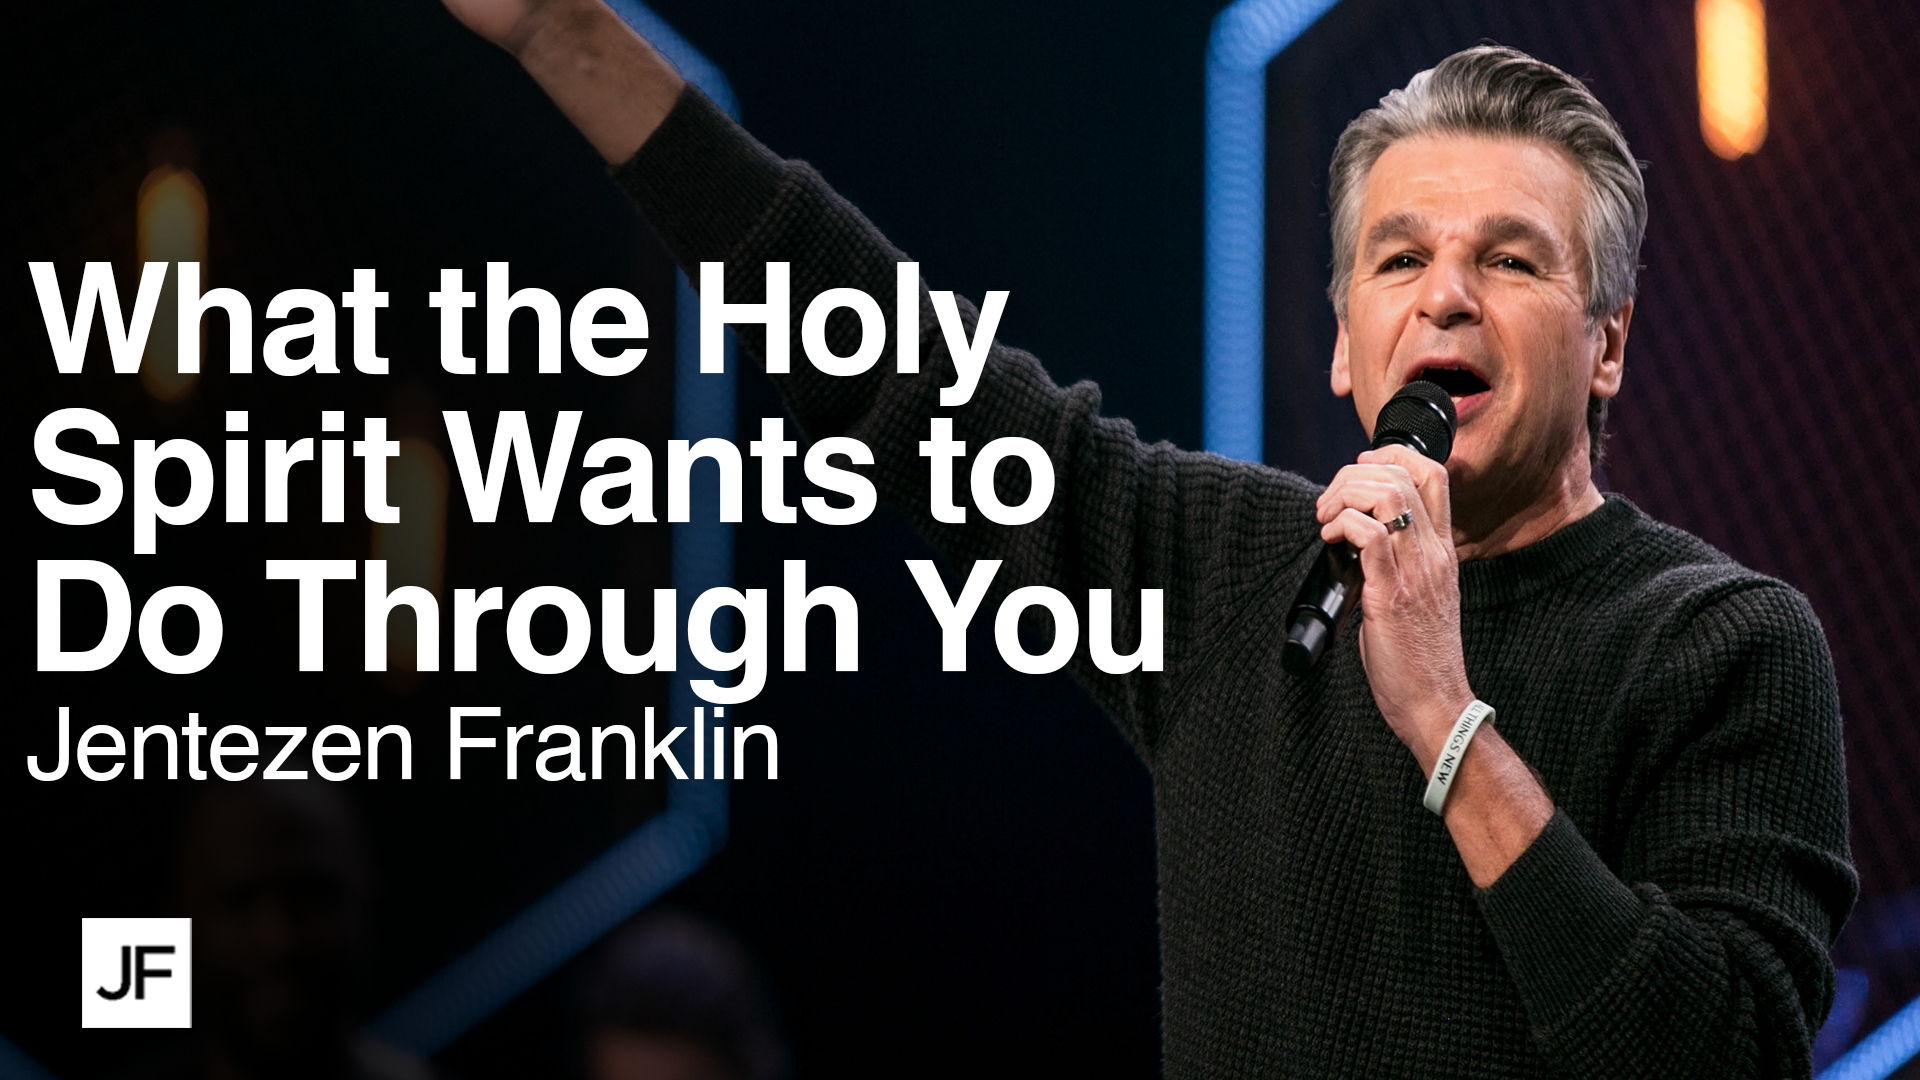 What the Holy Spirit Wants to Do Through You